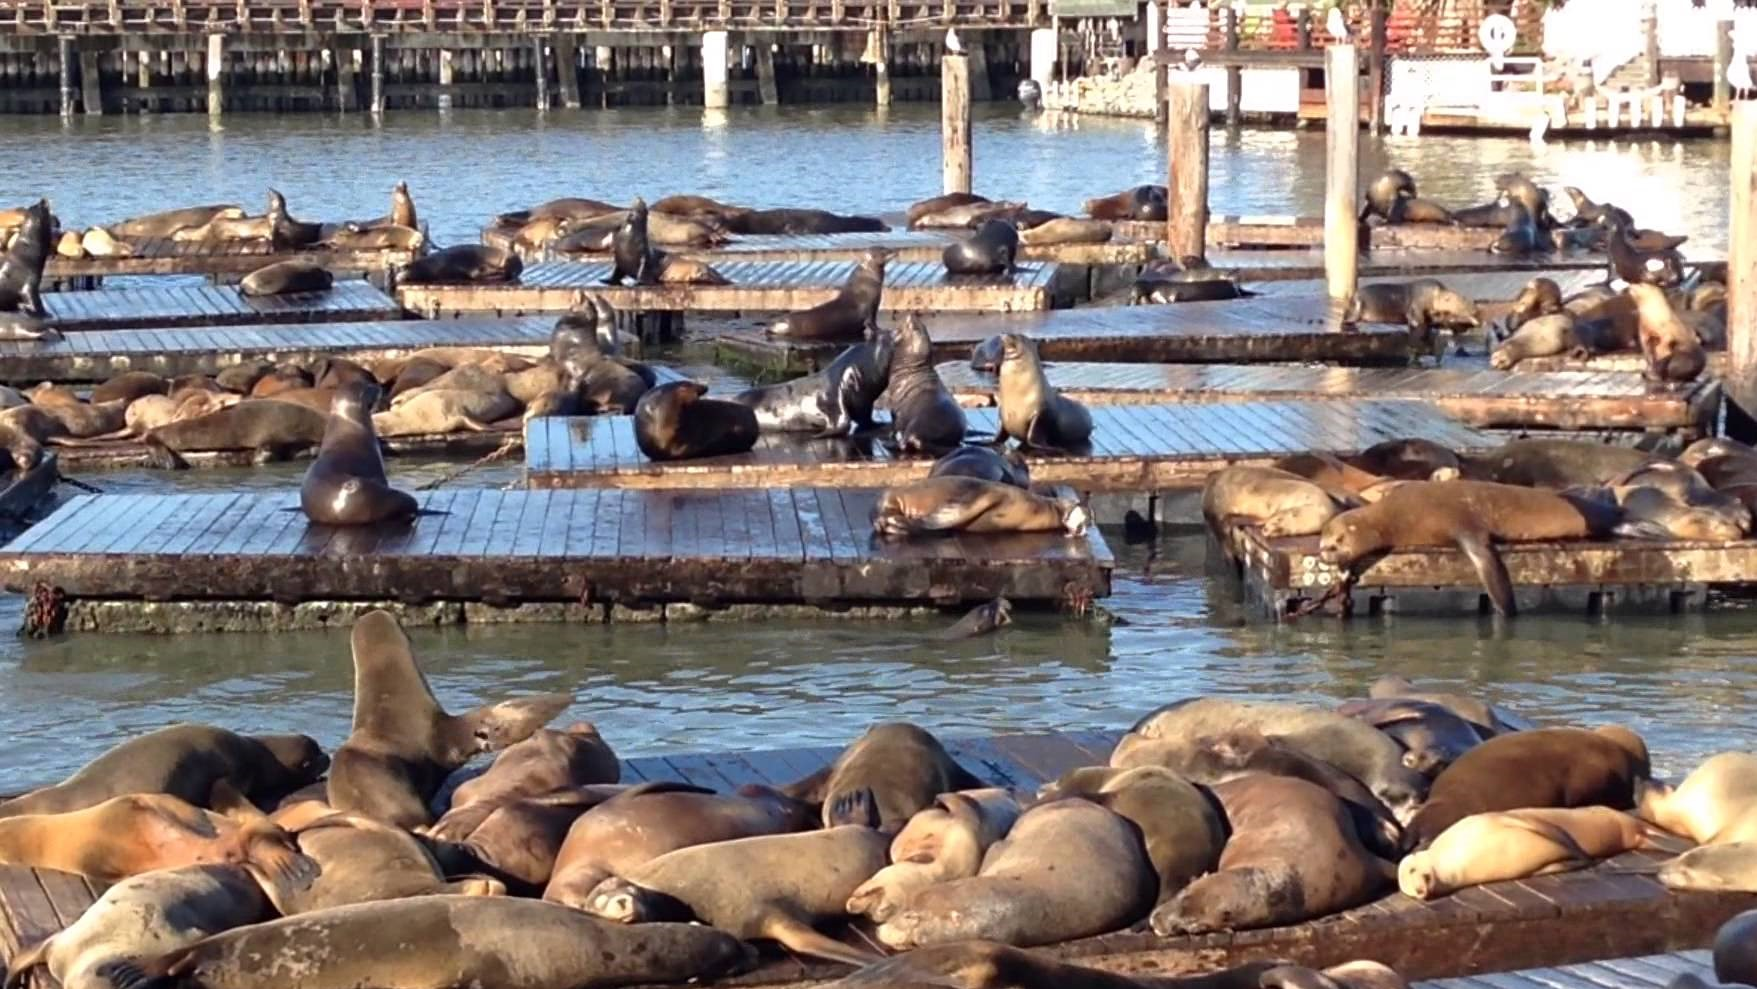 San Francisco Aquatic Park shut over 'aggressive' sea lions